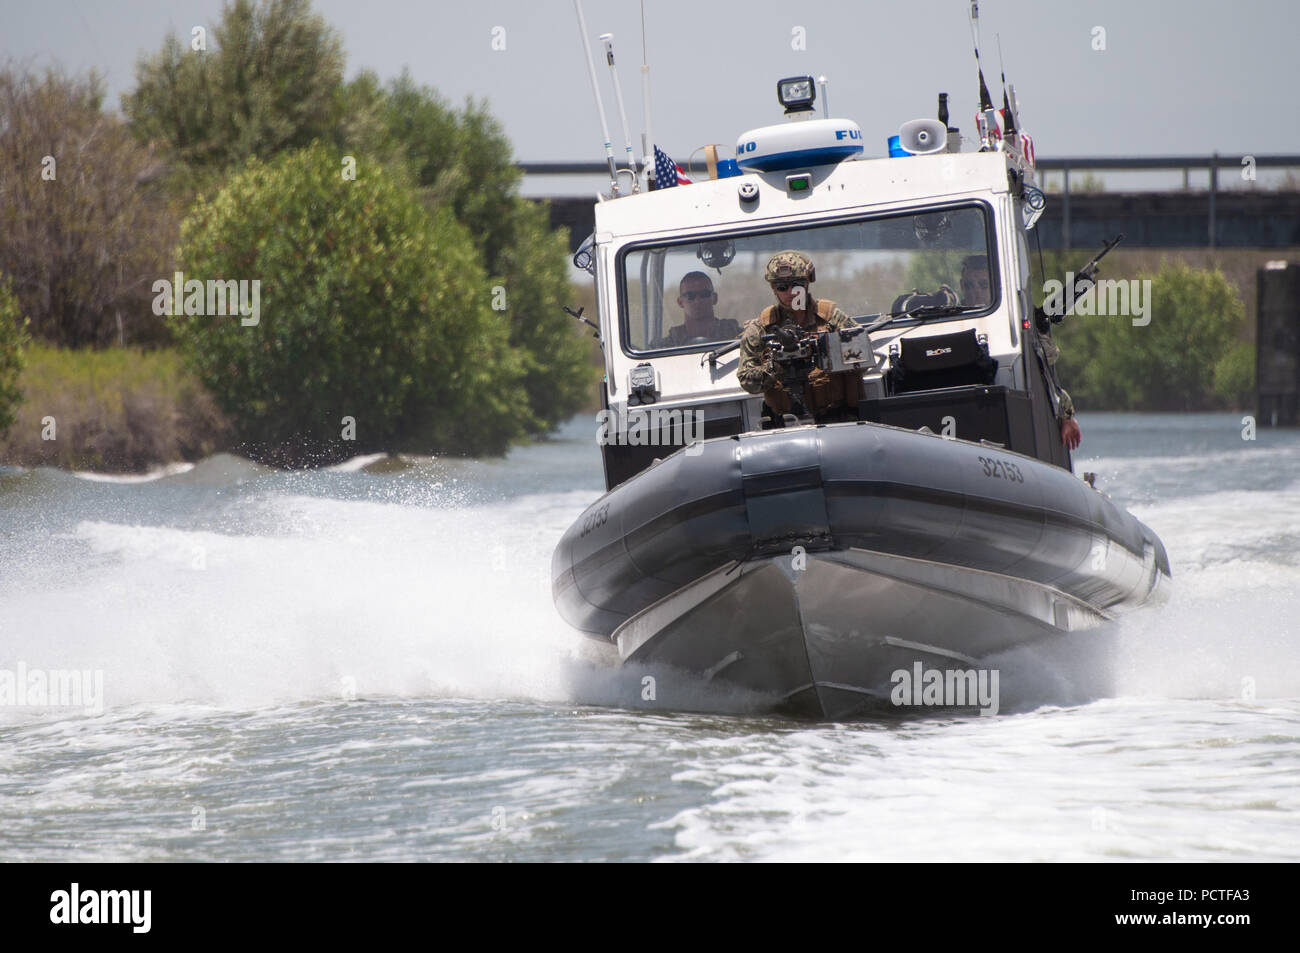 Members of Port Security Unit 309 waterside division underway for a Anti-terrorism, Force Protection Mission Patrol, Guantanamo Bay, Cuba, July 23, 2018. Port Security Unit 309 is deployed for 9 months in support of Operation Freedom's Sentinel. Stock Photo